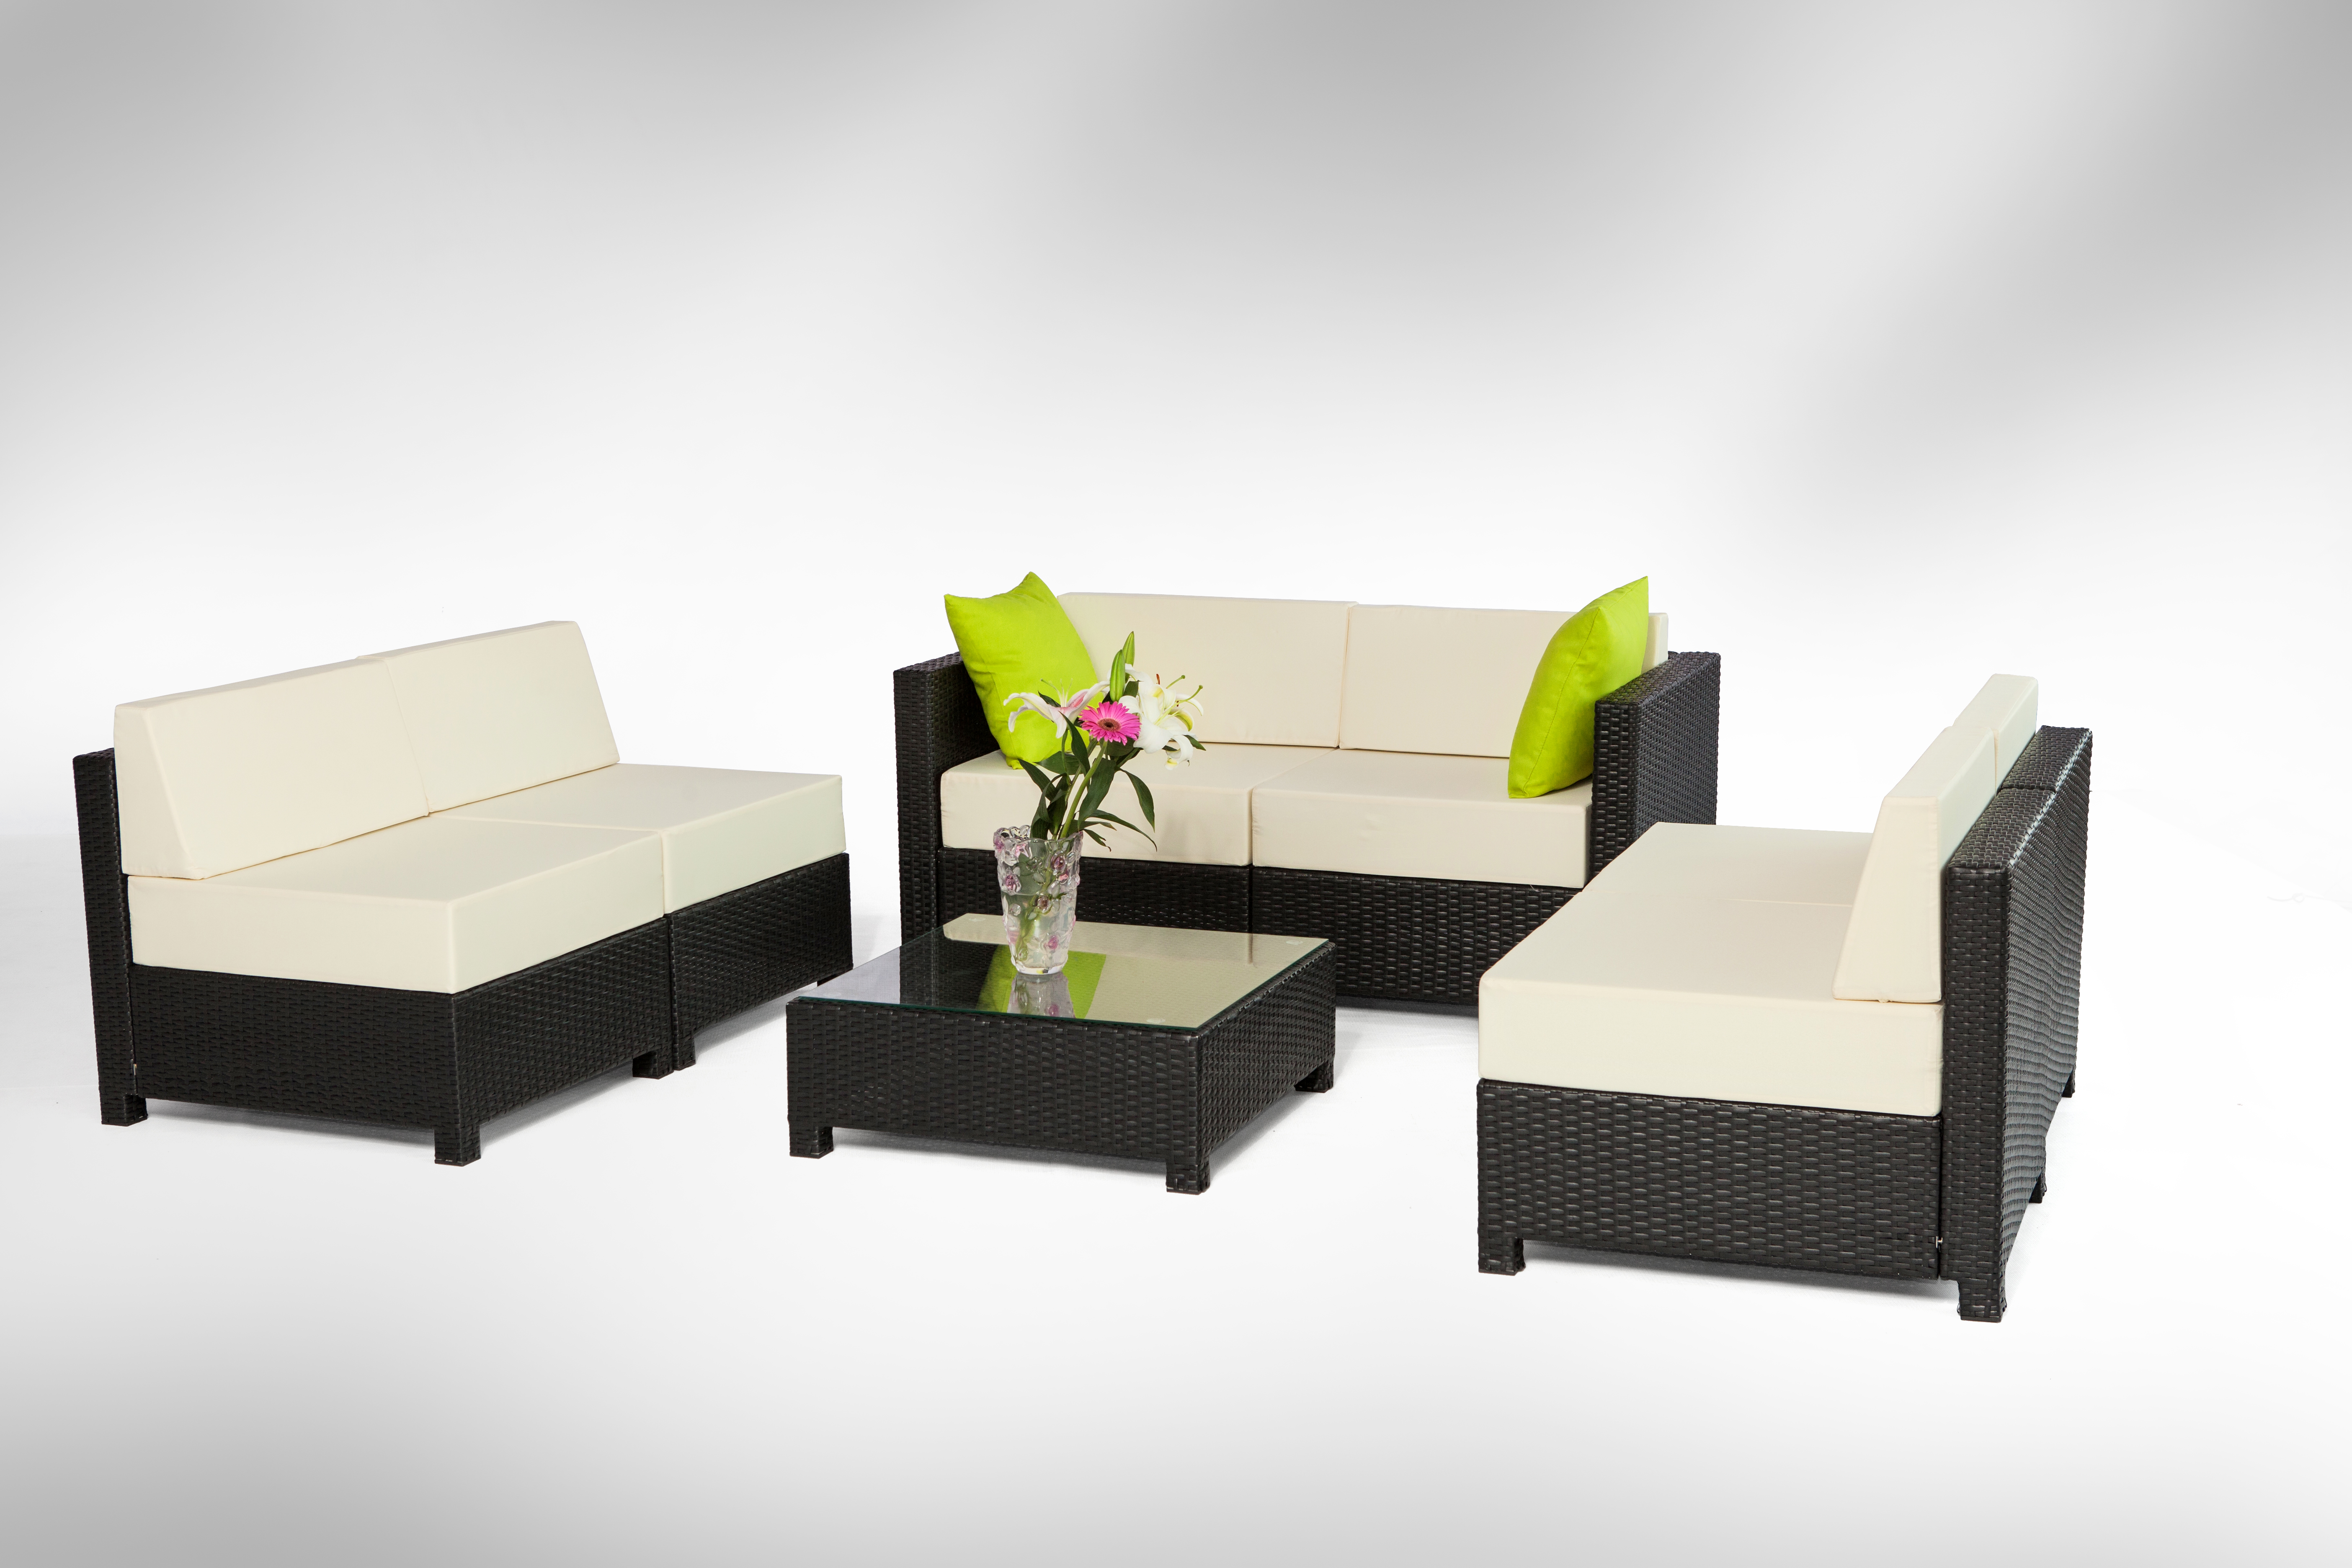 M bo 7pcs Black Wicker Patio Sectional Indoor Outdoor Sofa Furniture Set Co